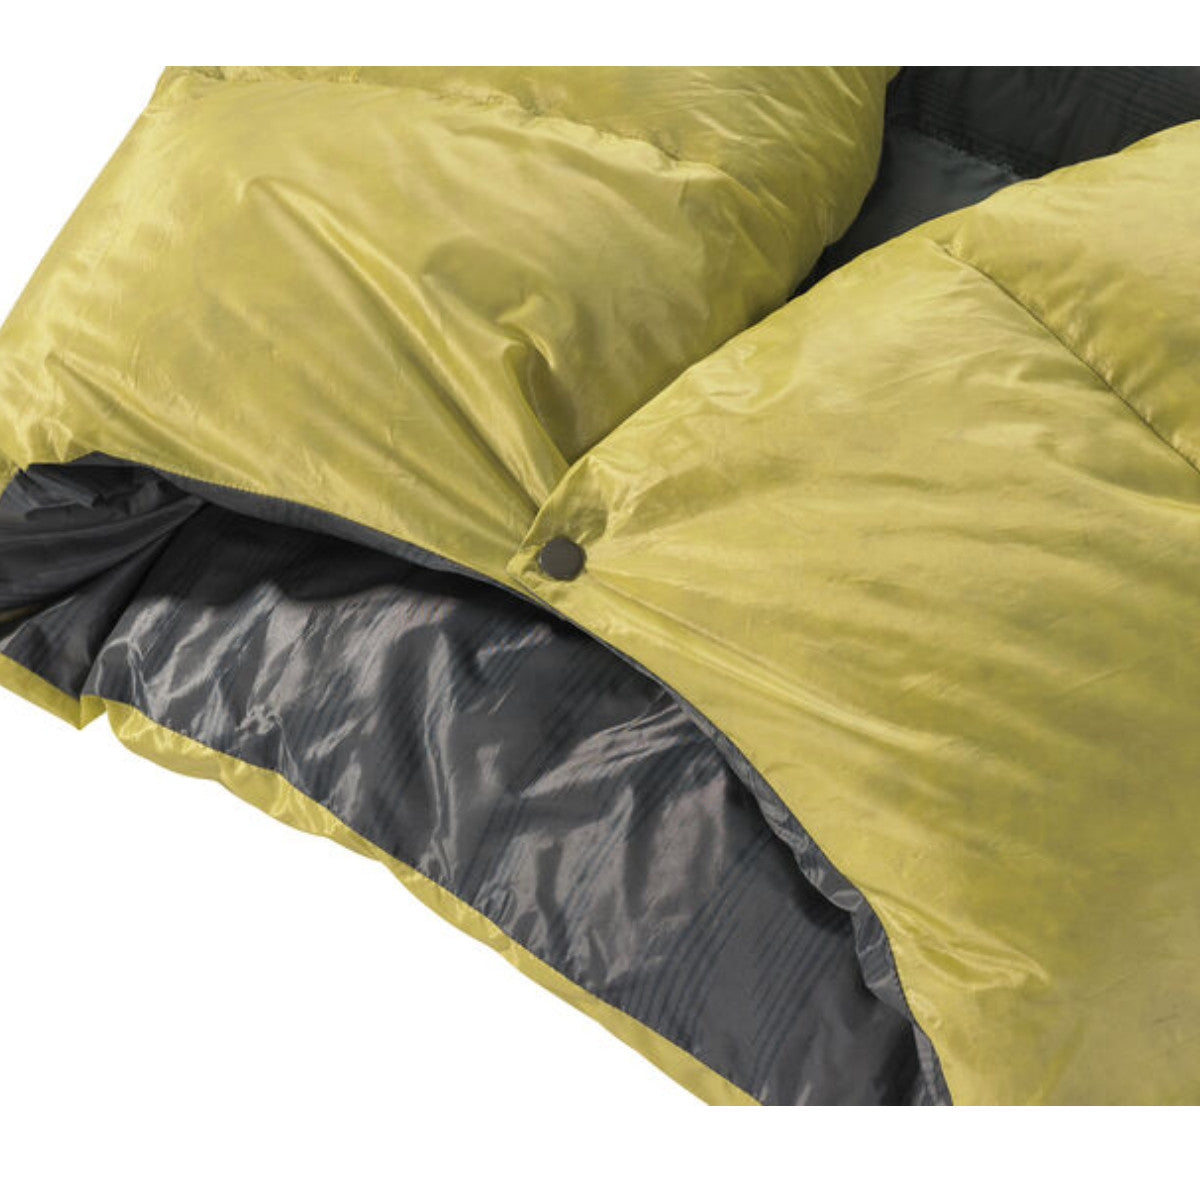 button on Thermarest Corus 20F/-6C Quilt in golden colour